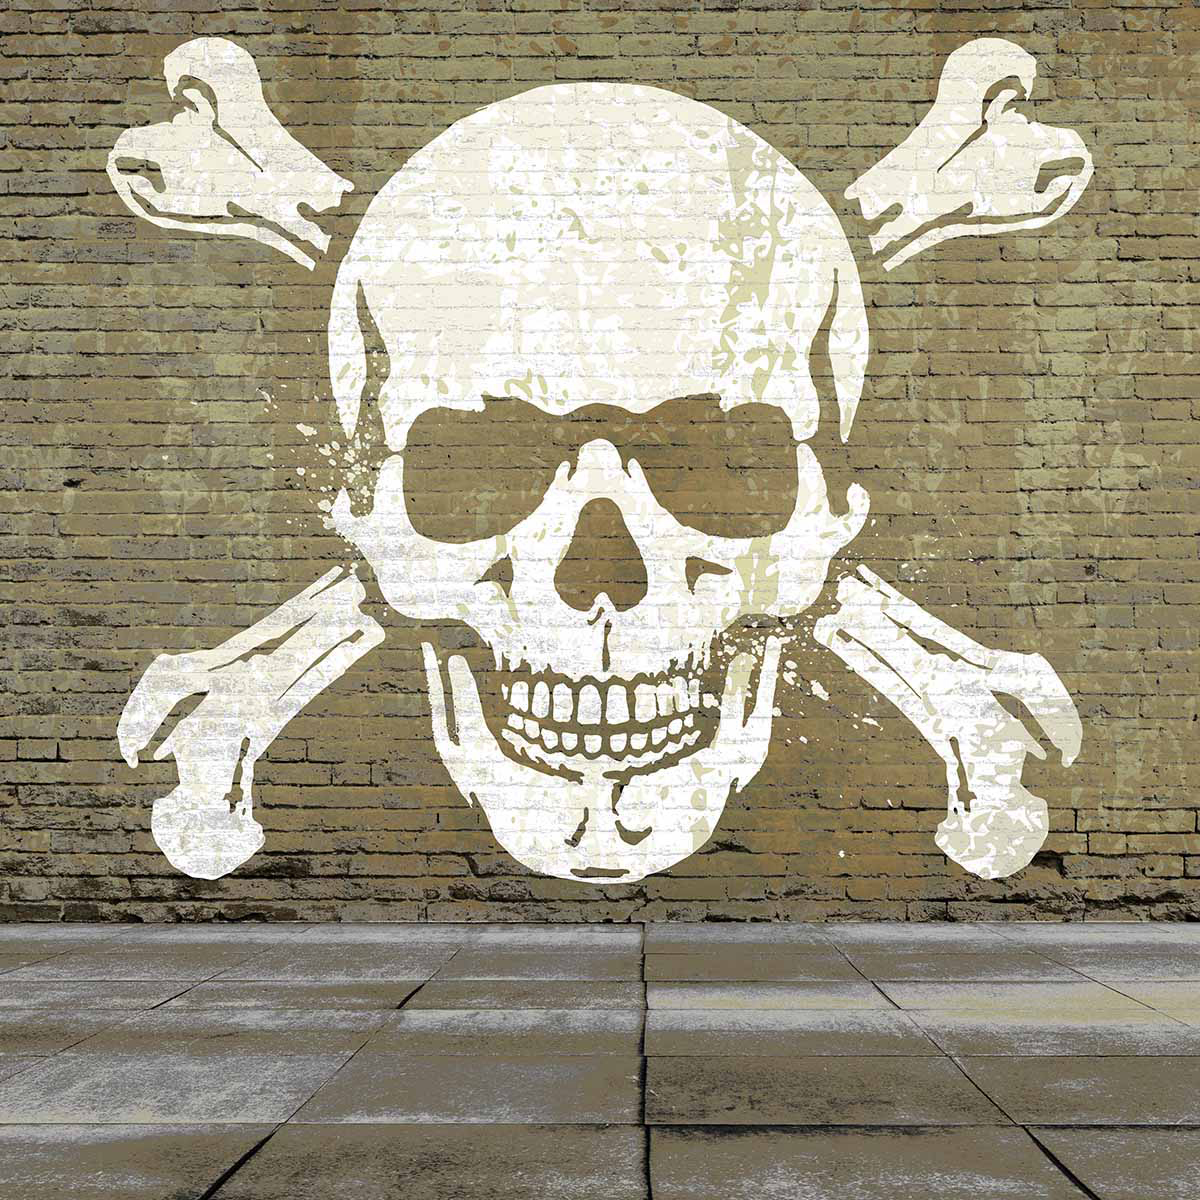 Allenjoy brick wall skull cool graffiti background for photo studio background photography in background from consumer electronics on aliexpress com